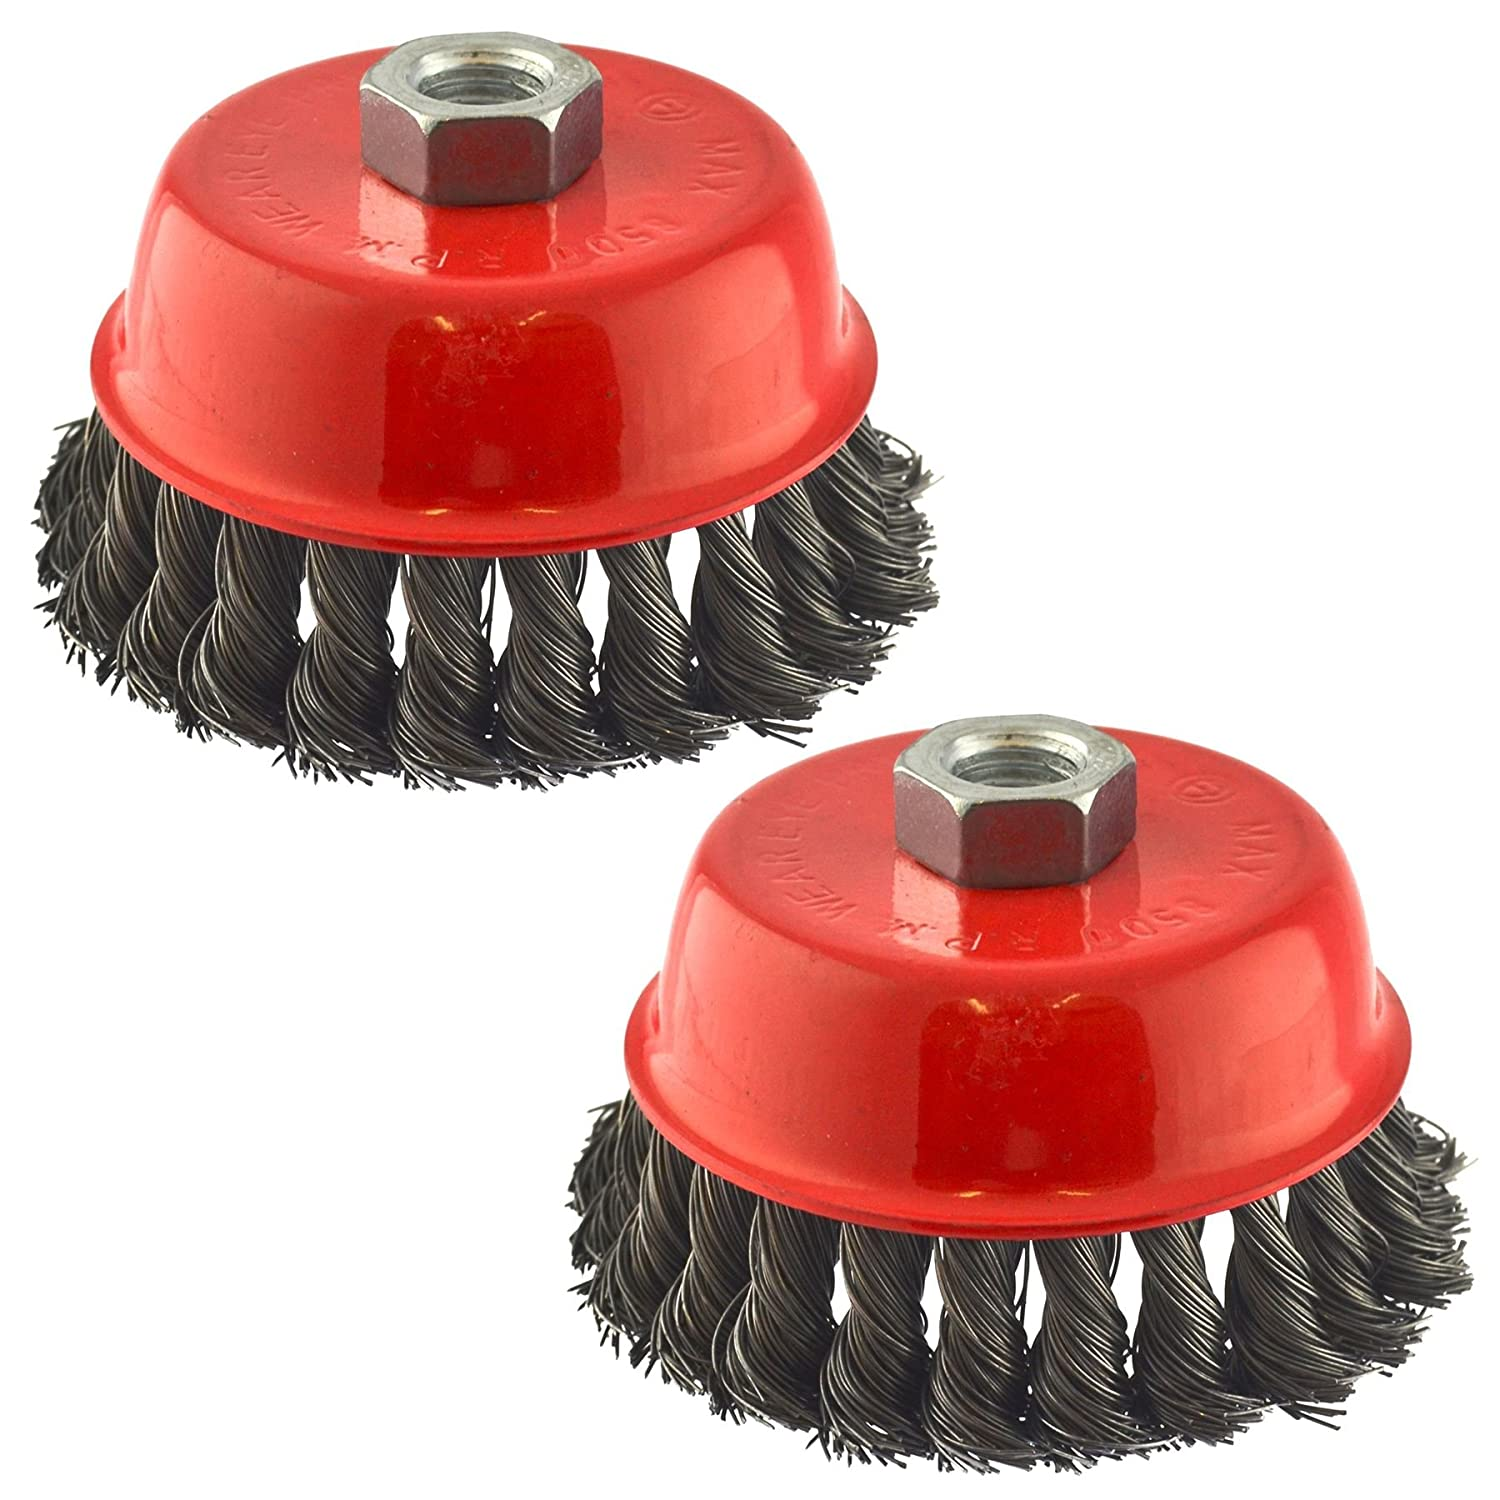 Wire Cup Brush Wheel 100mm for 7' or 9' Angle Grinder Twist Knot 2Pk AT236 AB Tools